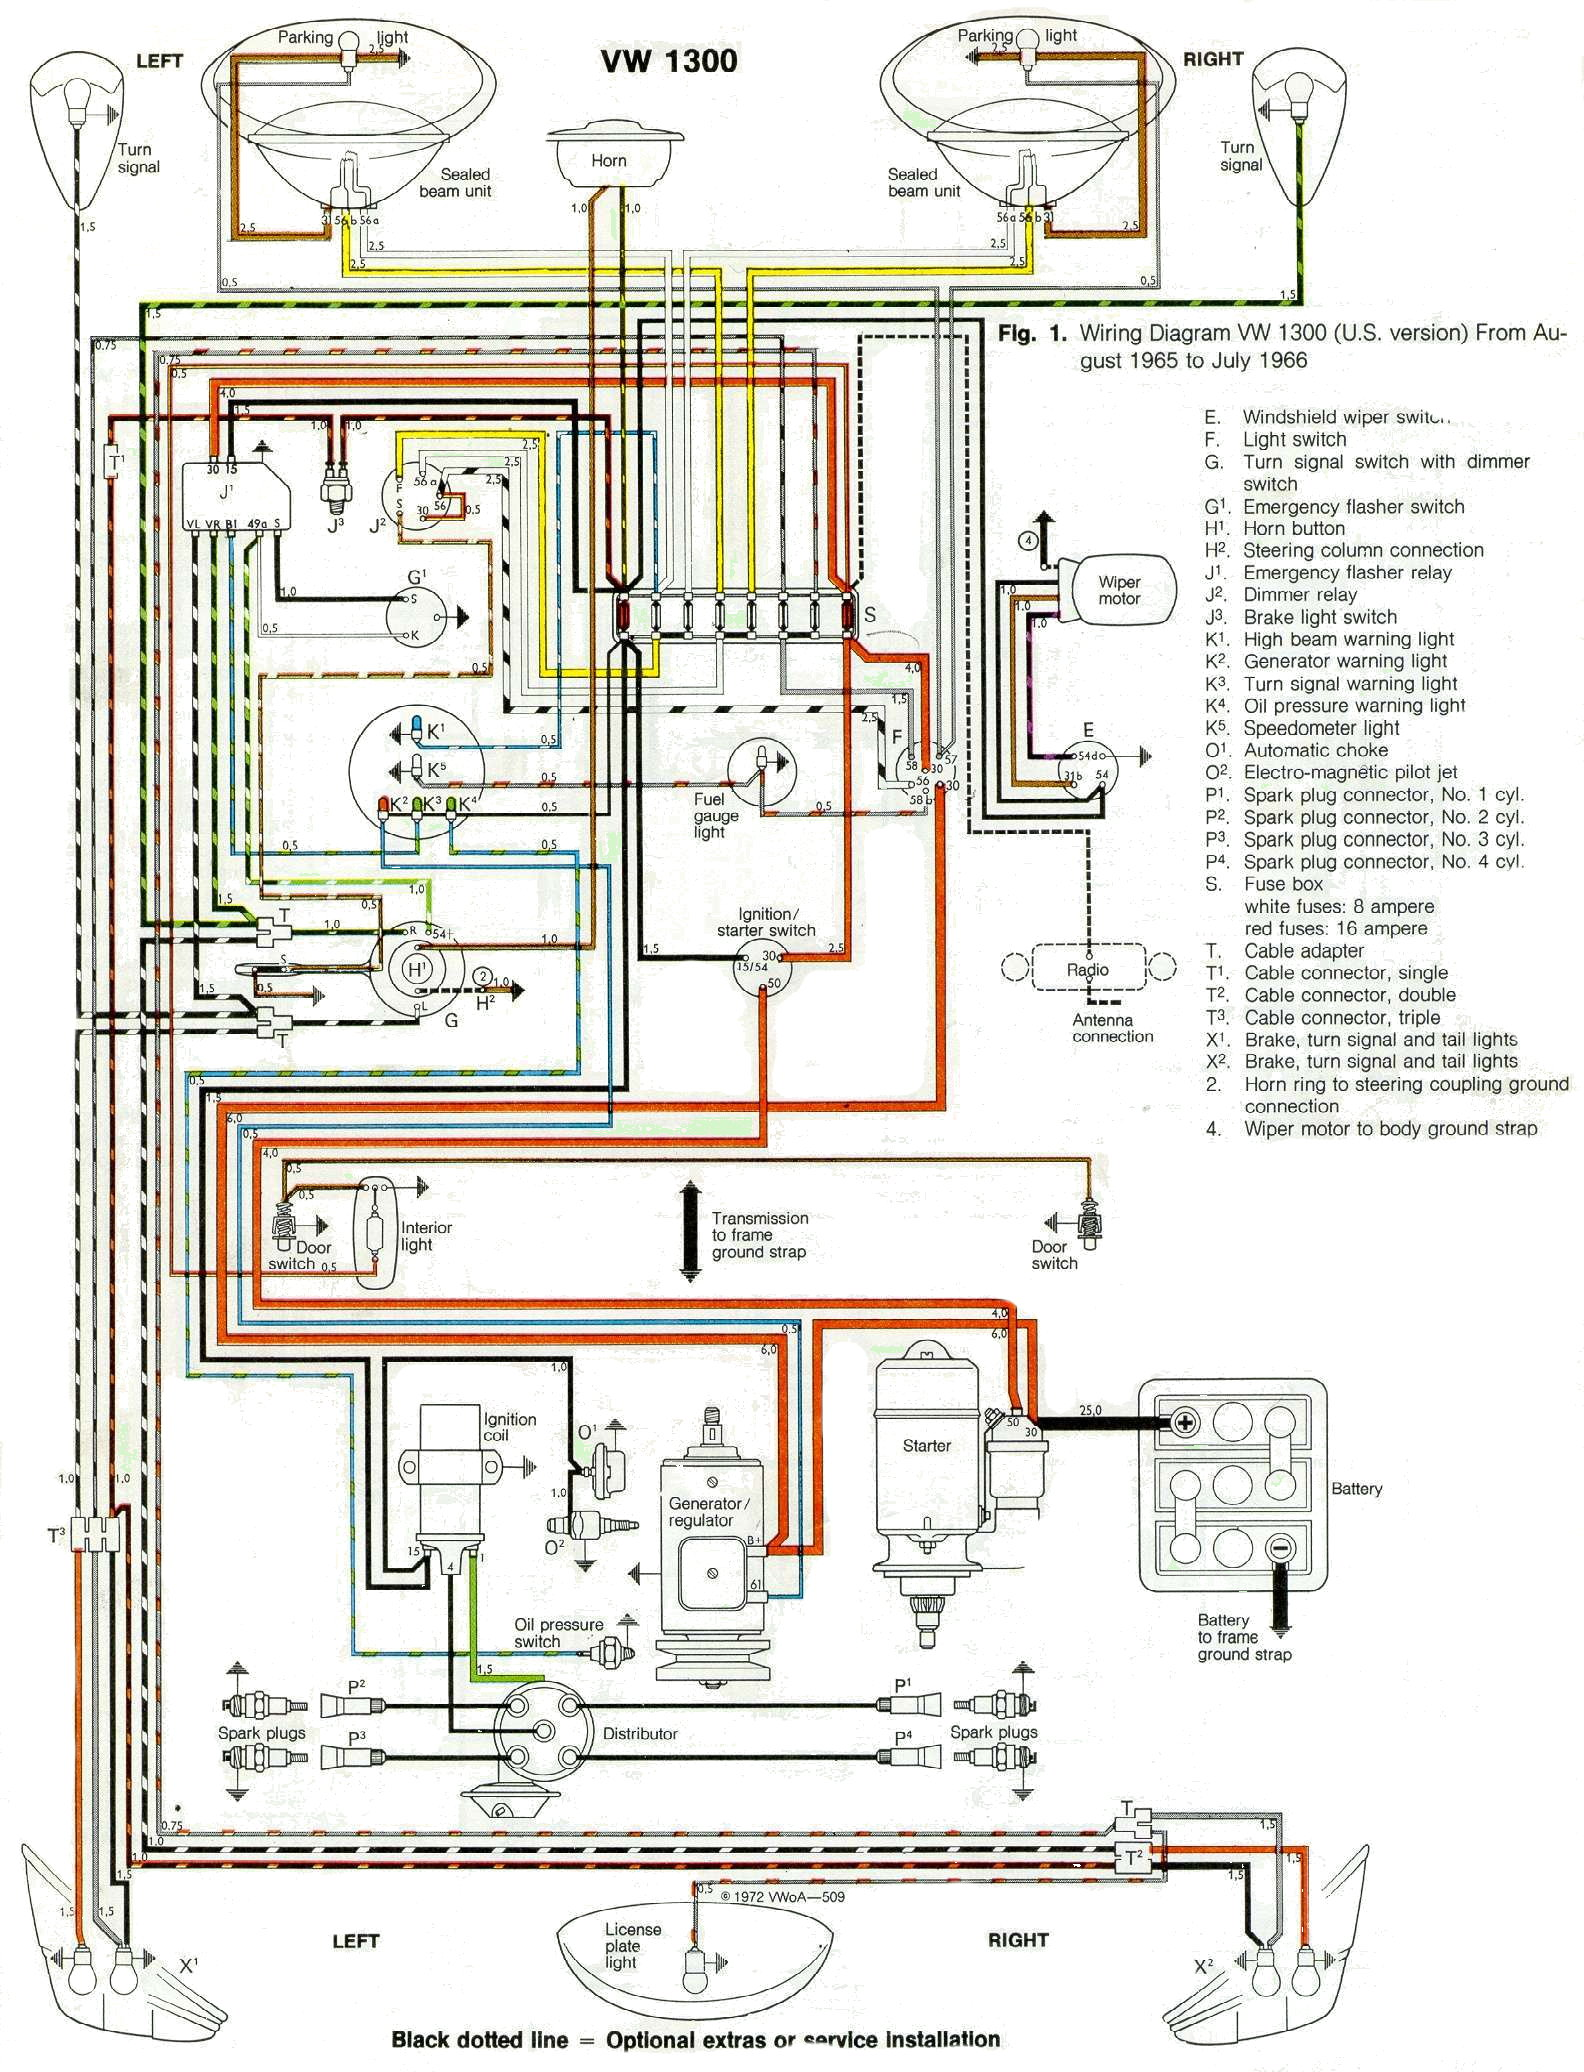 1966 Wiring 1966 wiring diagram 1970 vw beetle electrical wiring diagram at soozxer.org